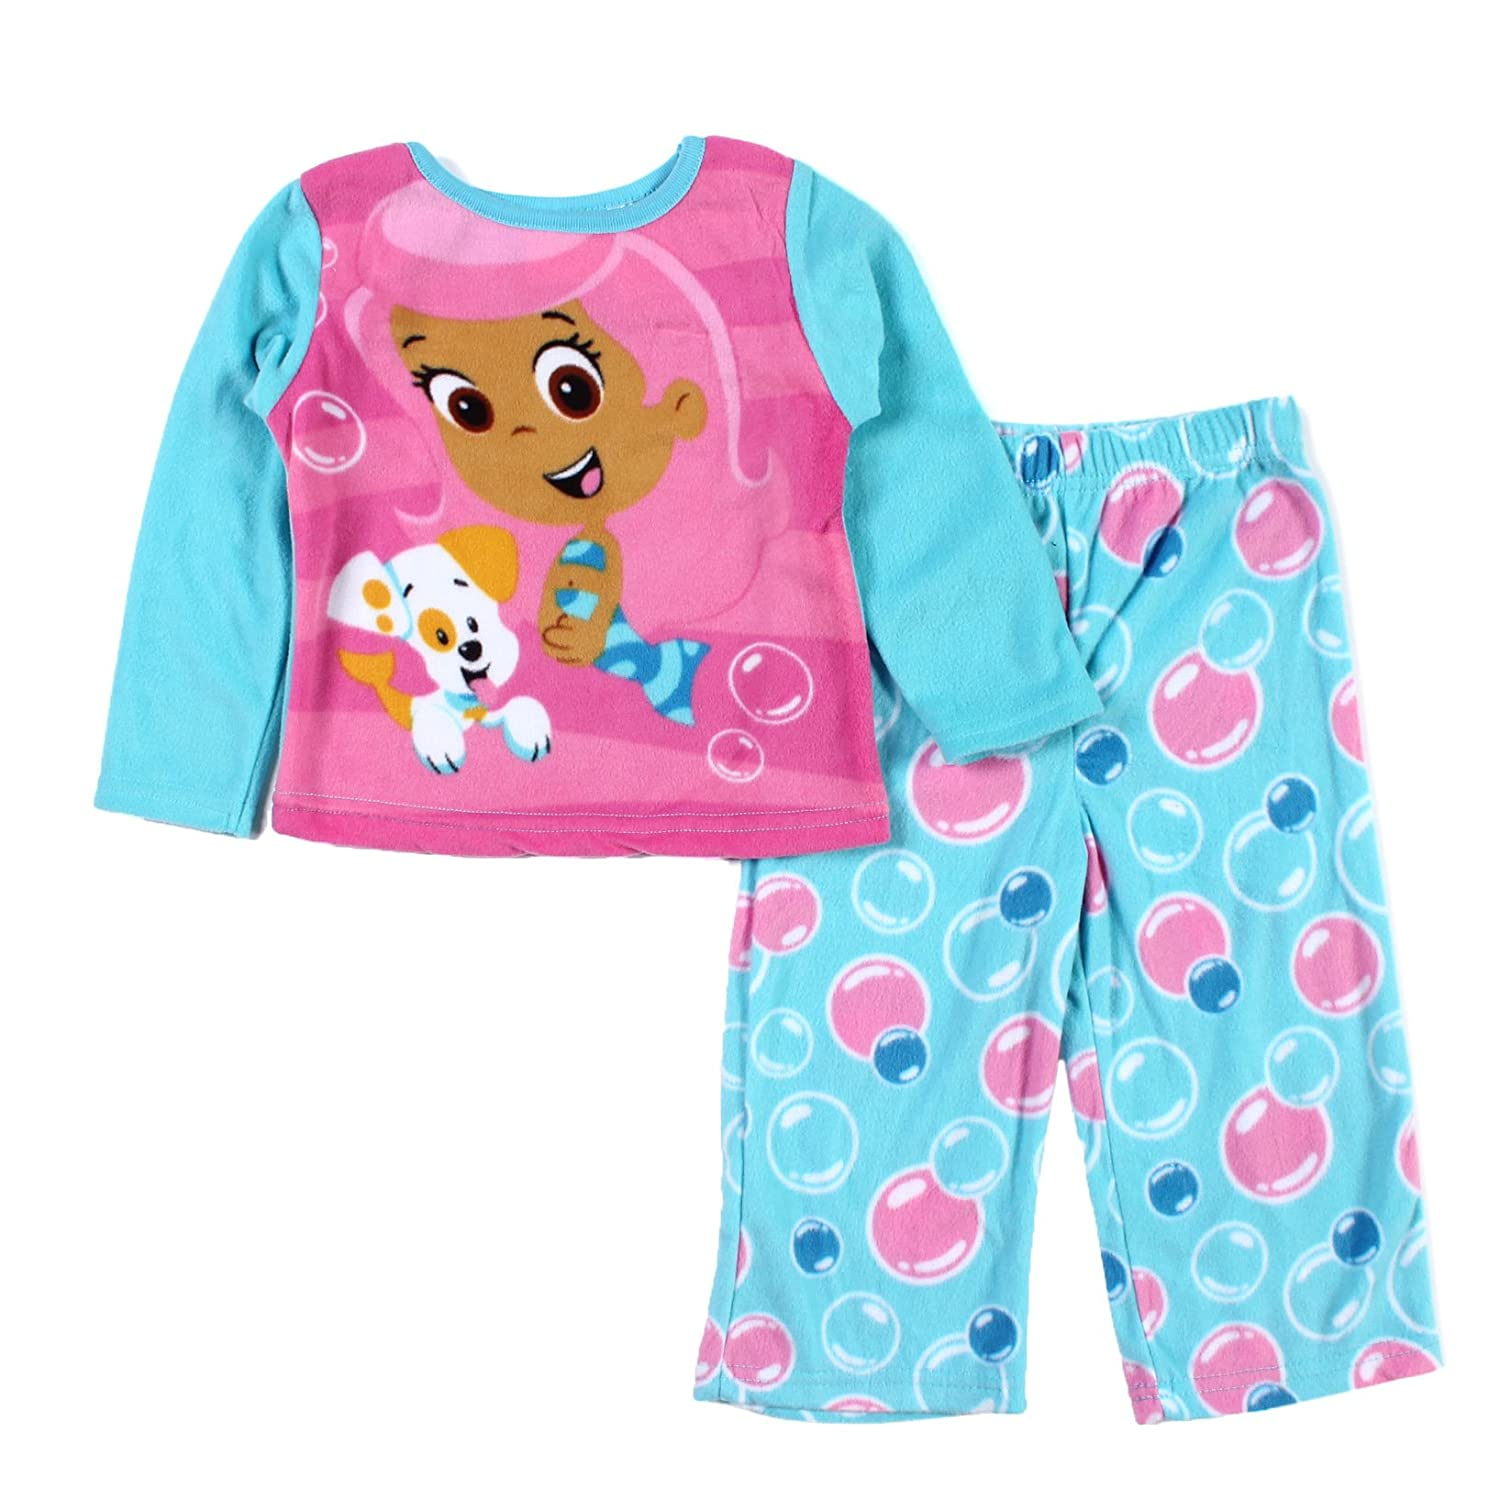 Amazon.com: Nickelodeon Little Girls Bubble Guppies Microfleece Pajama Sest (4T): Infant And Toddler Pajama Sets: Clothing